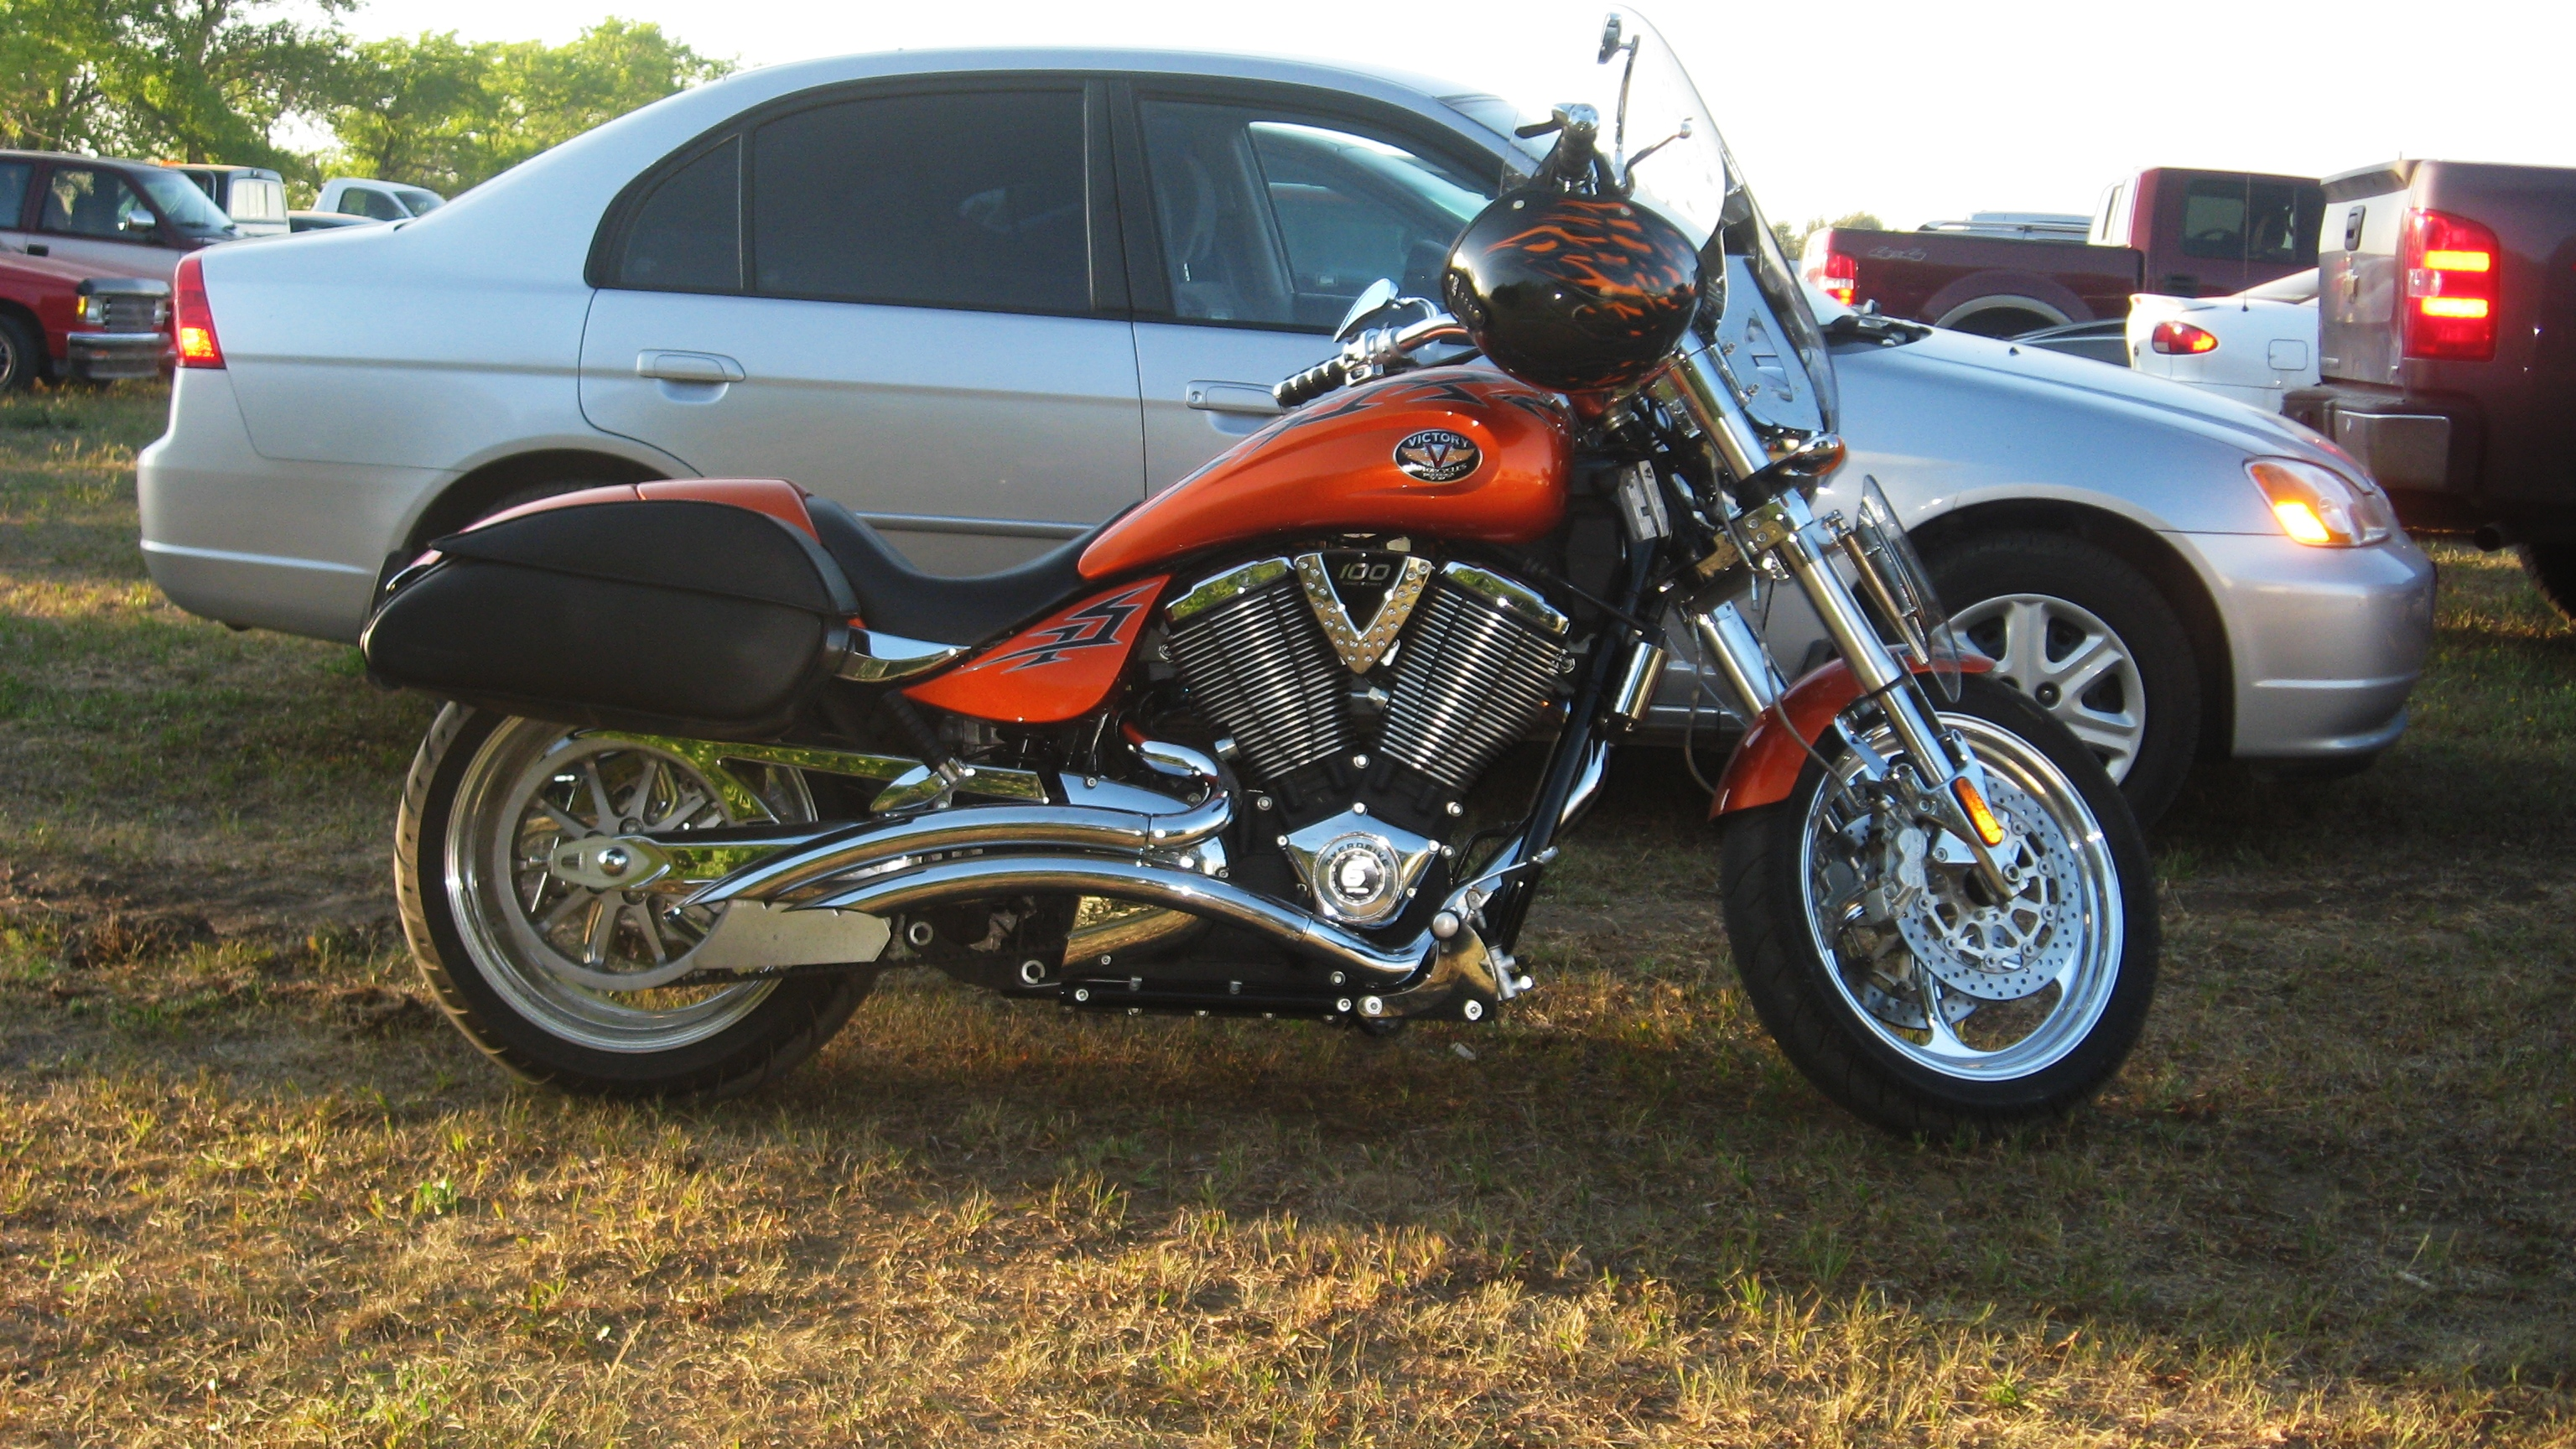 Suzuki Intruder Owners Manual